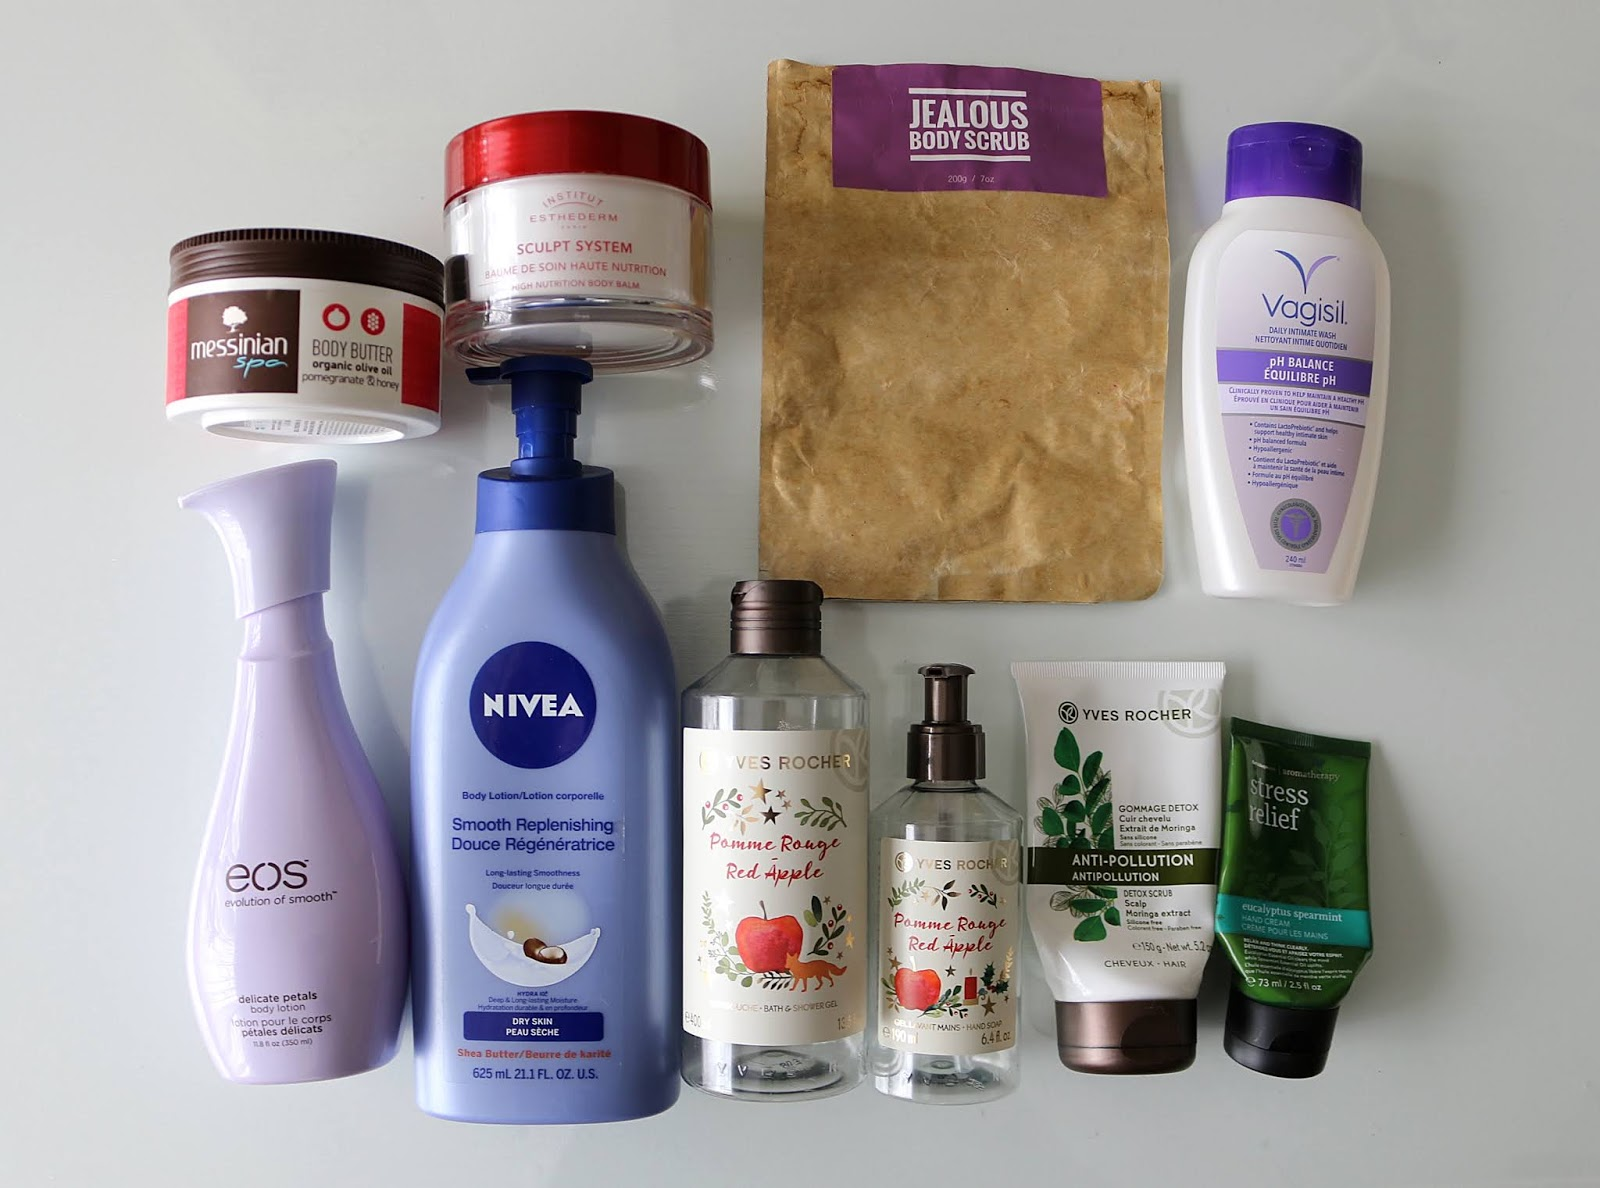 empties body care yves rocher jealous body scrub vagisil institut esthederm messinian spa bath body works eos nivea